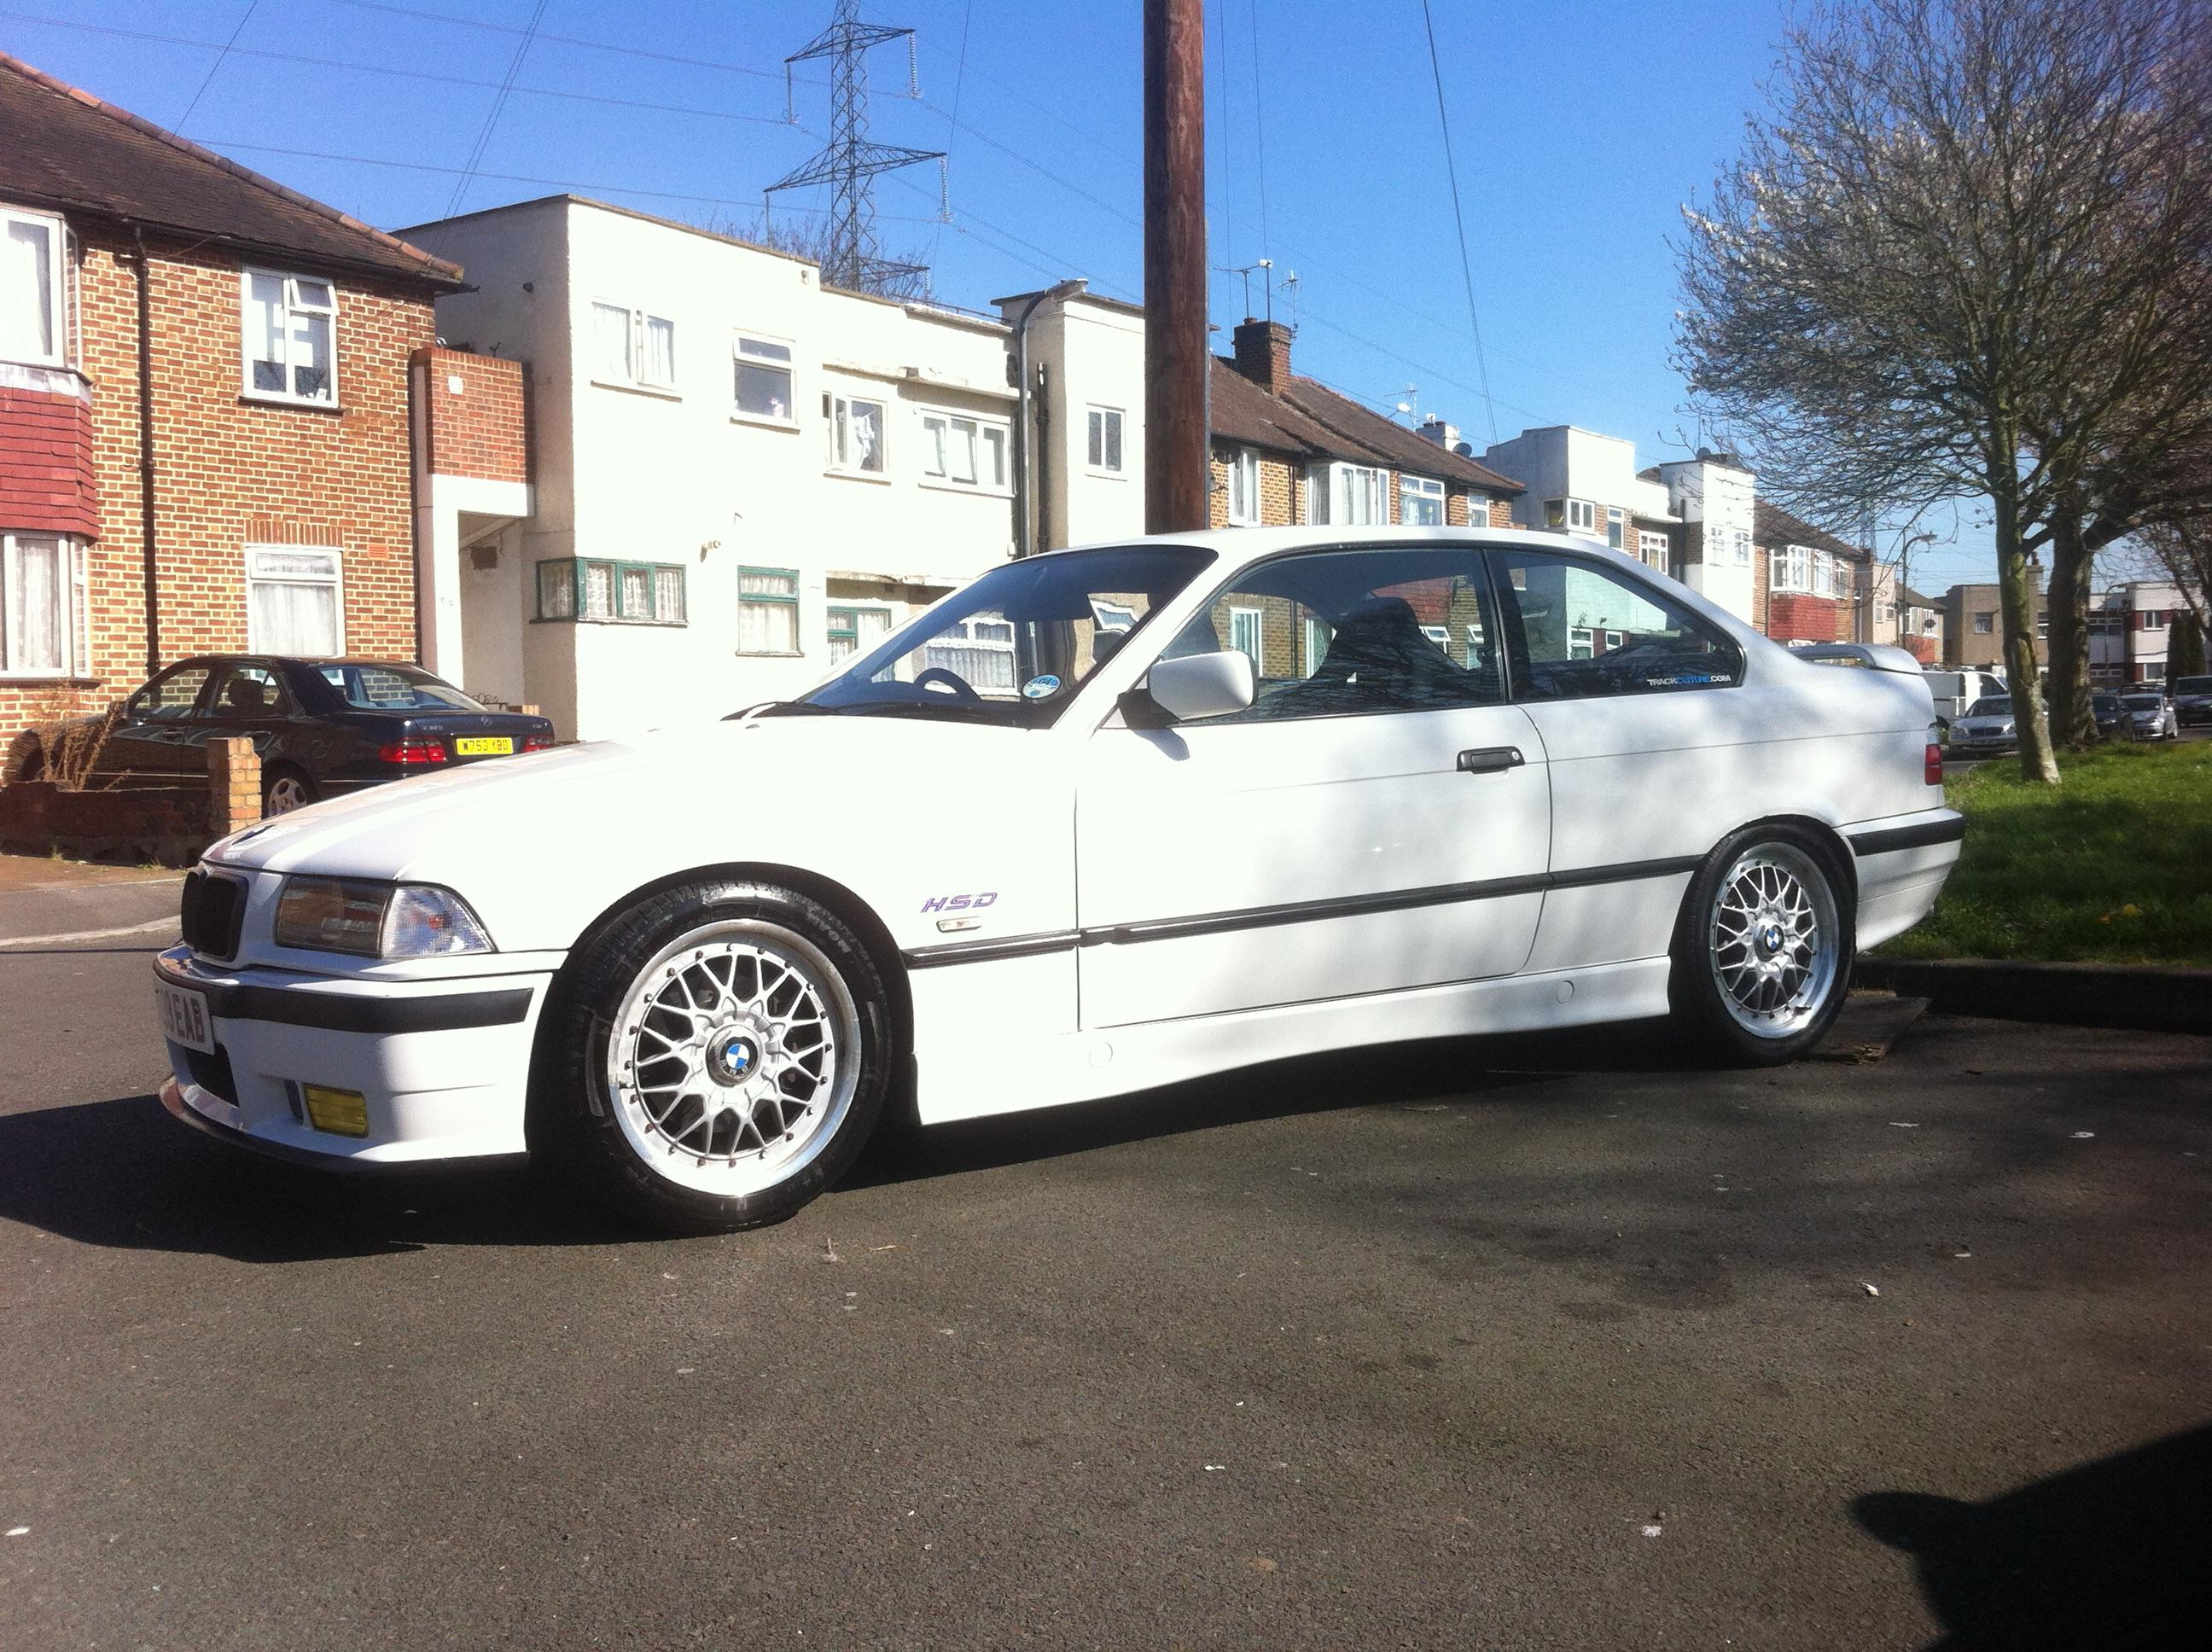 My old e36 coupe (328is) I absolutely loved this thing, until it